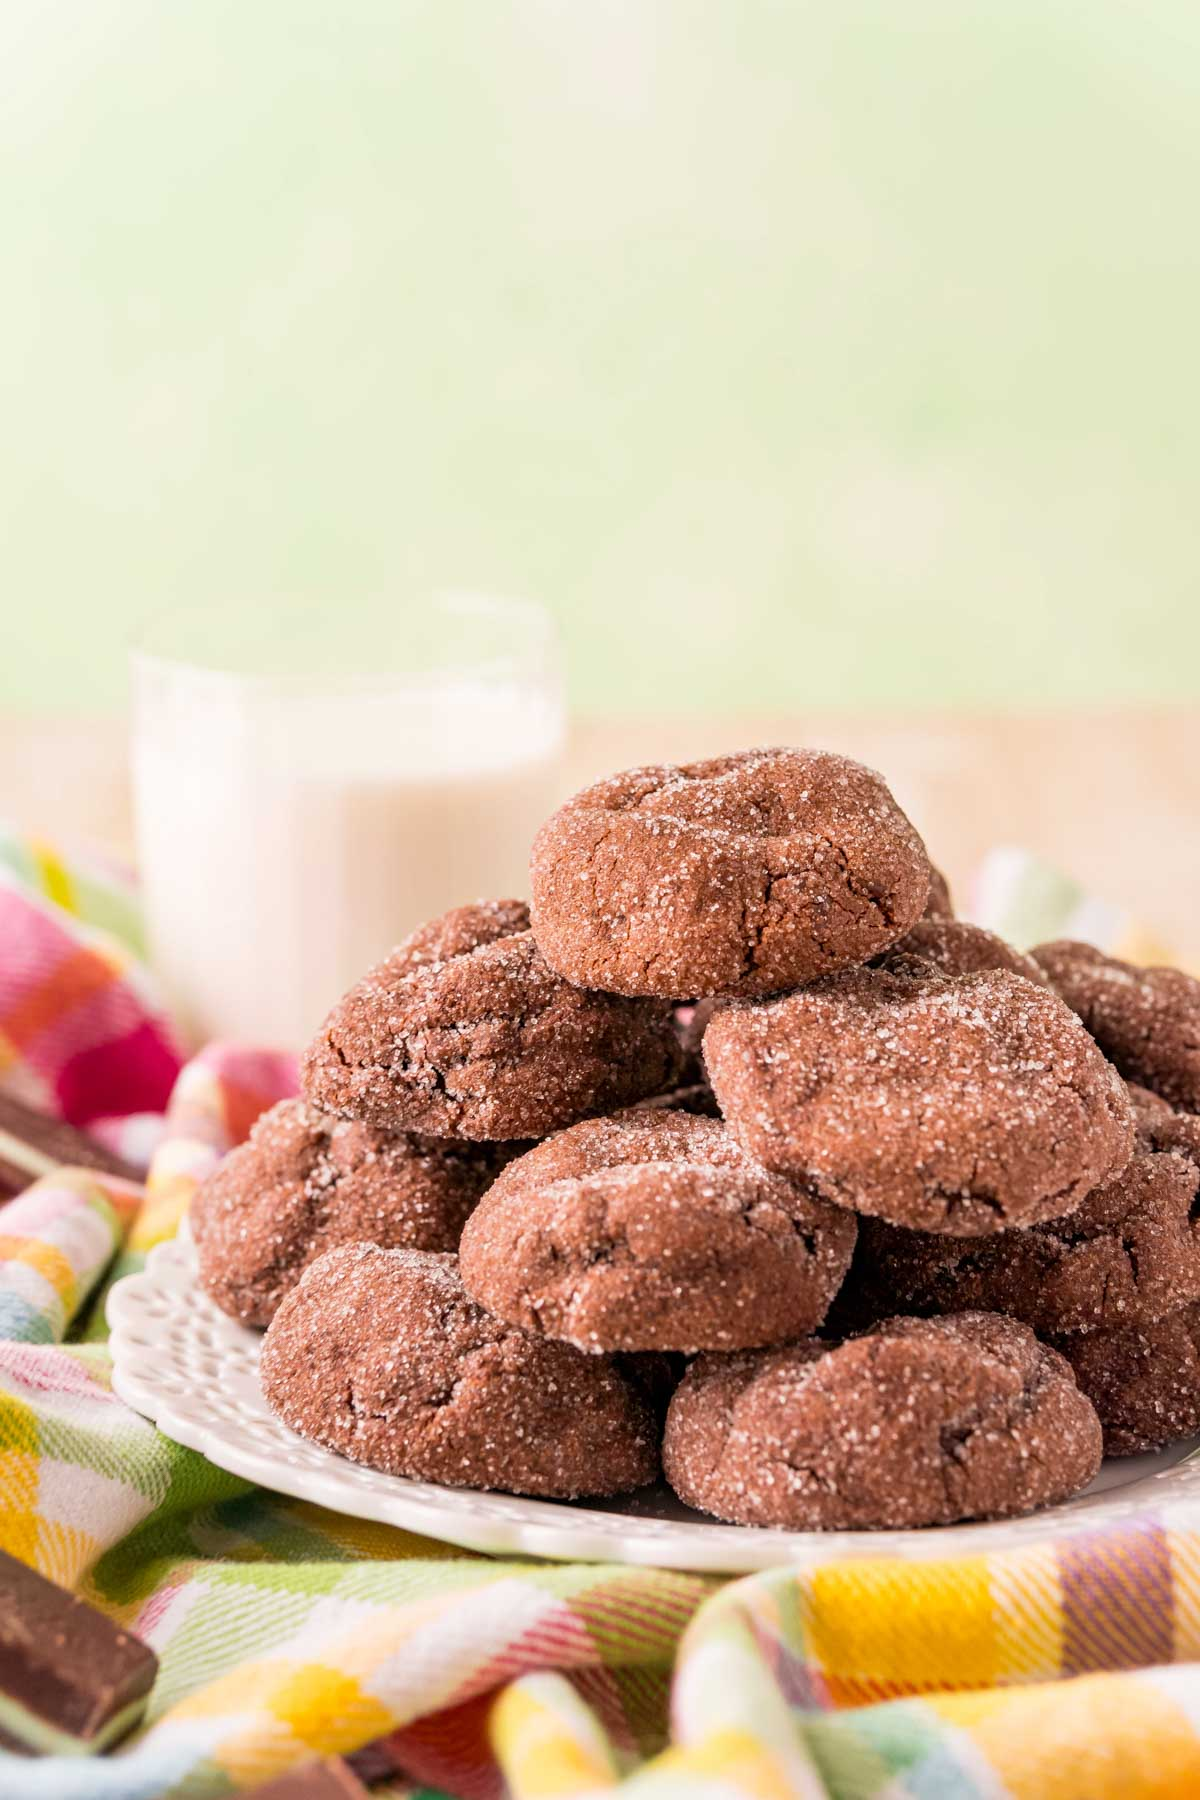 Plate of Andes mint cookies with a glass of milk in the background